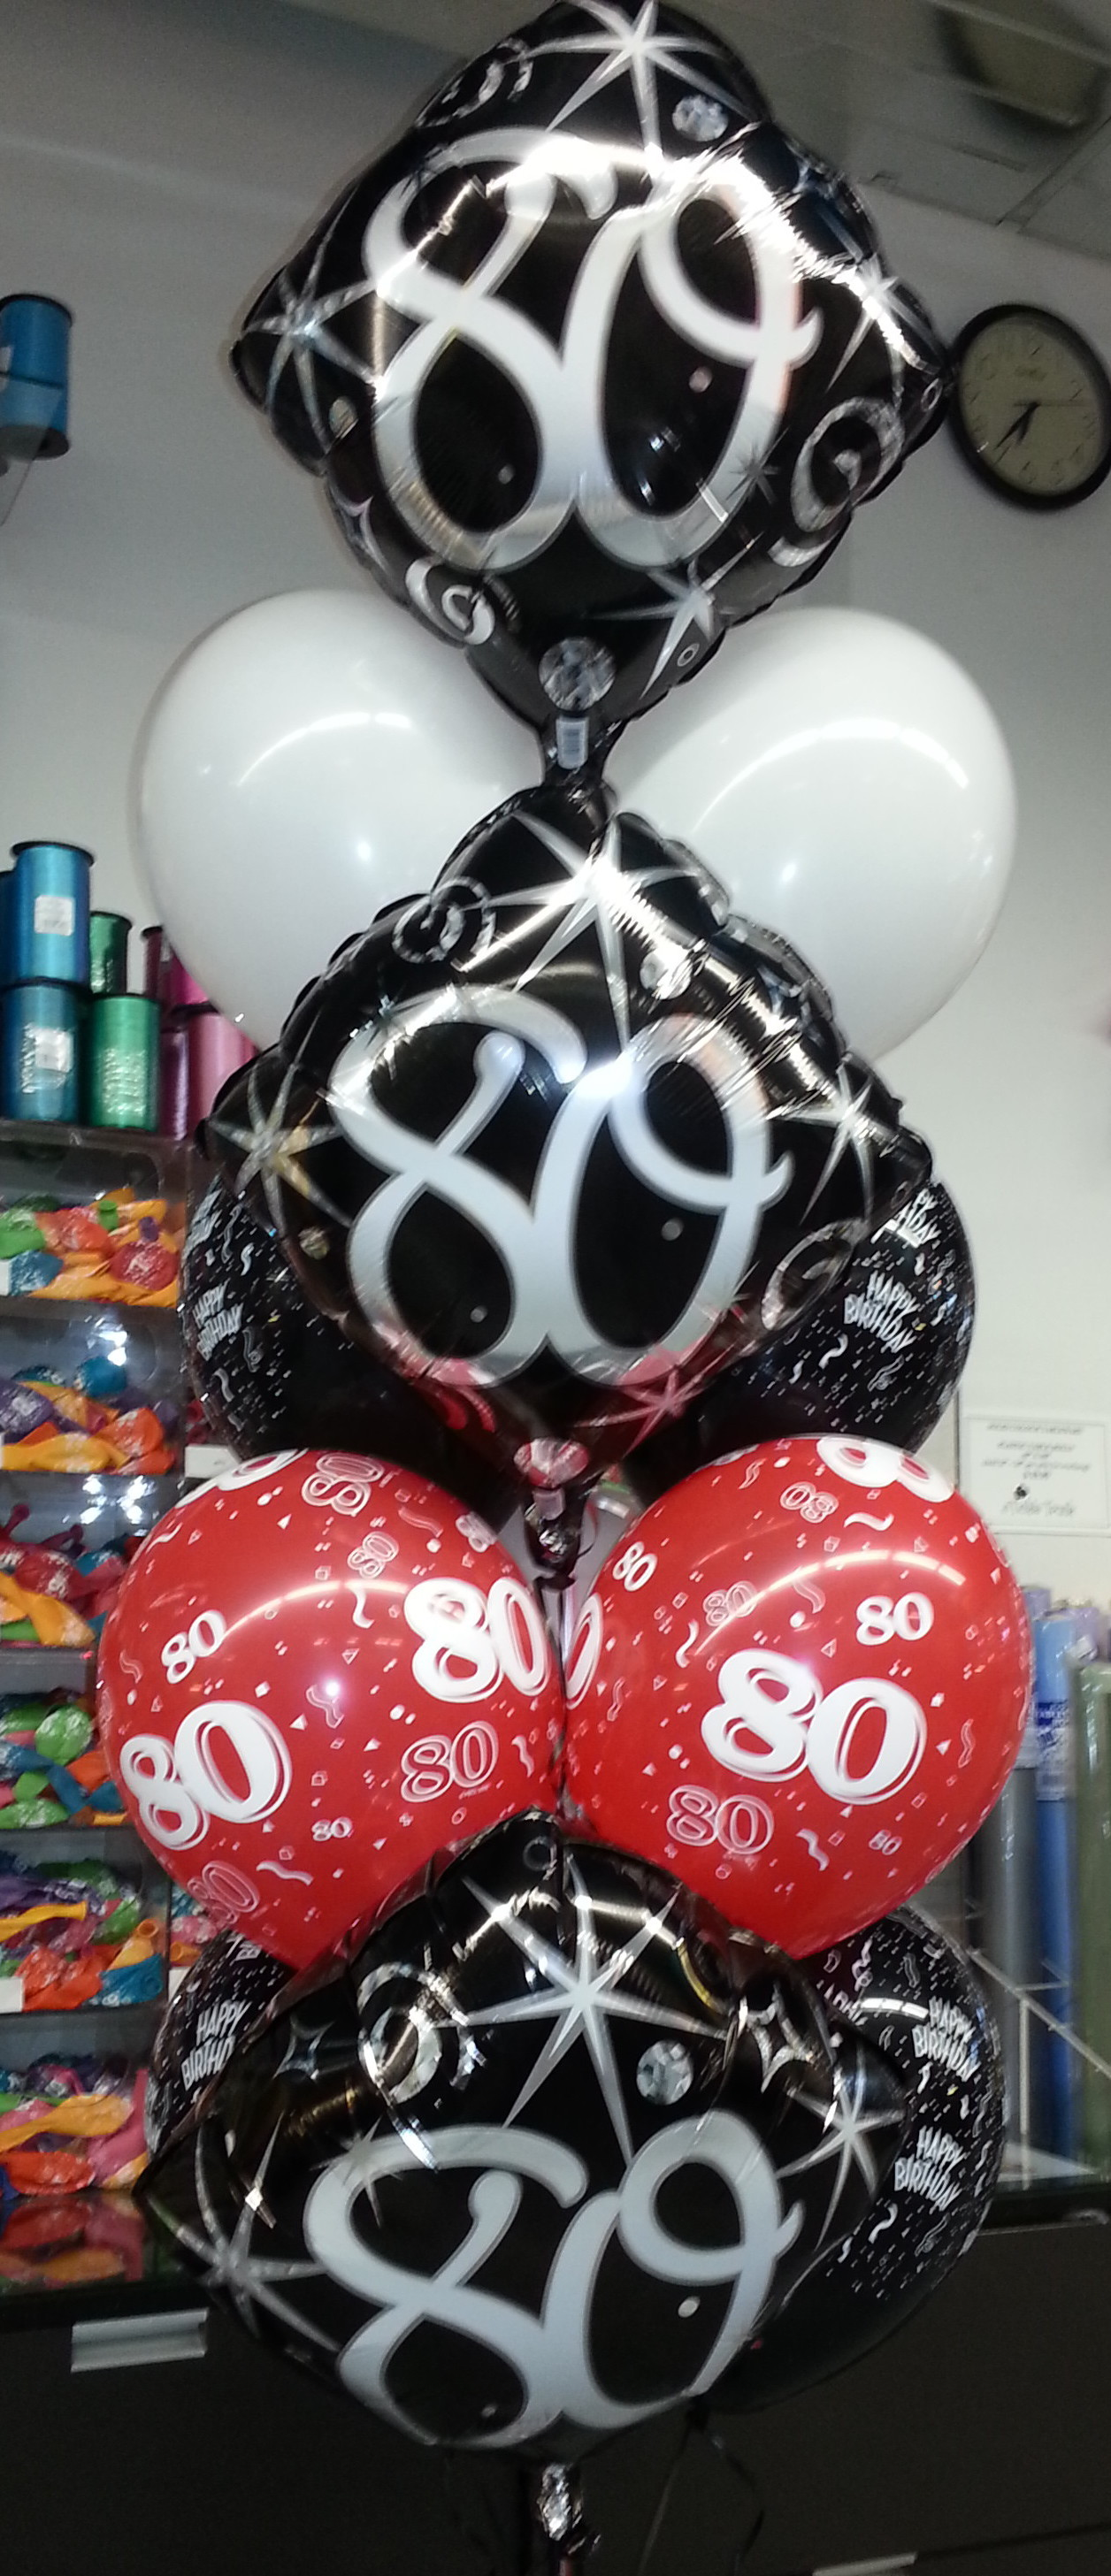 80th-birthday-balloon-bouquet